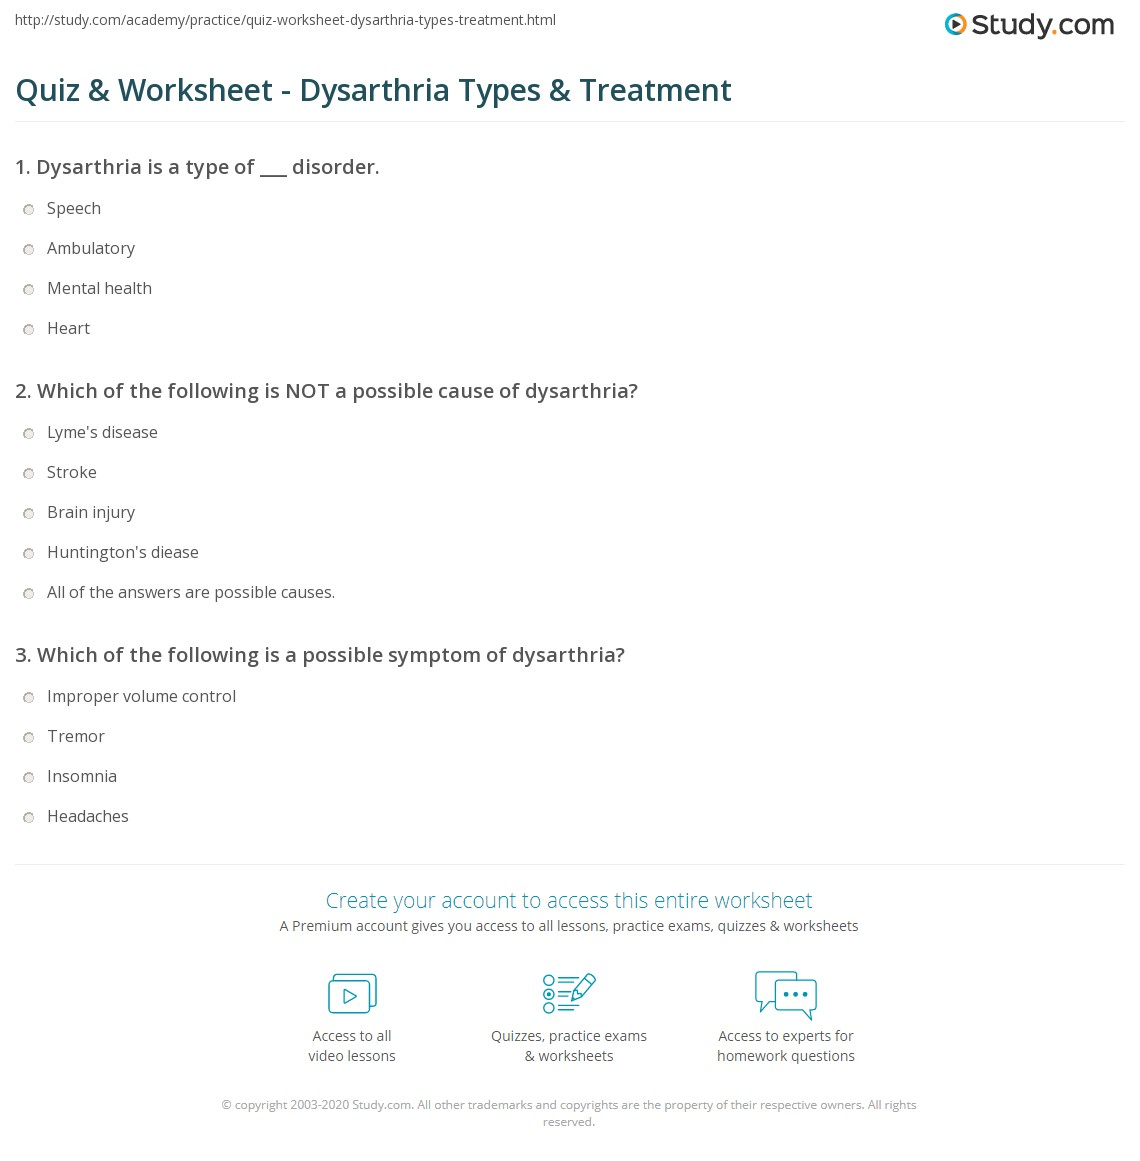 print dysarthria definition types treatment worksheet